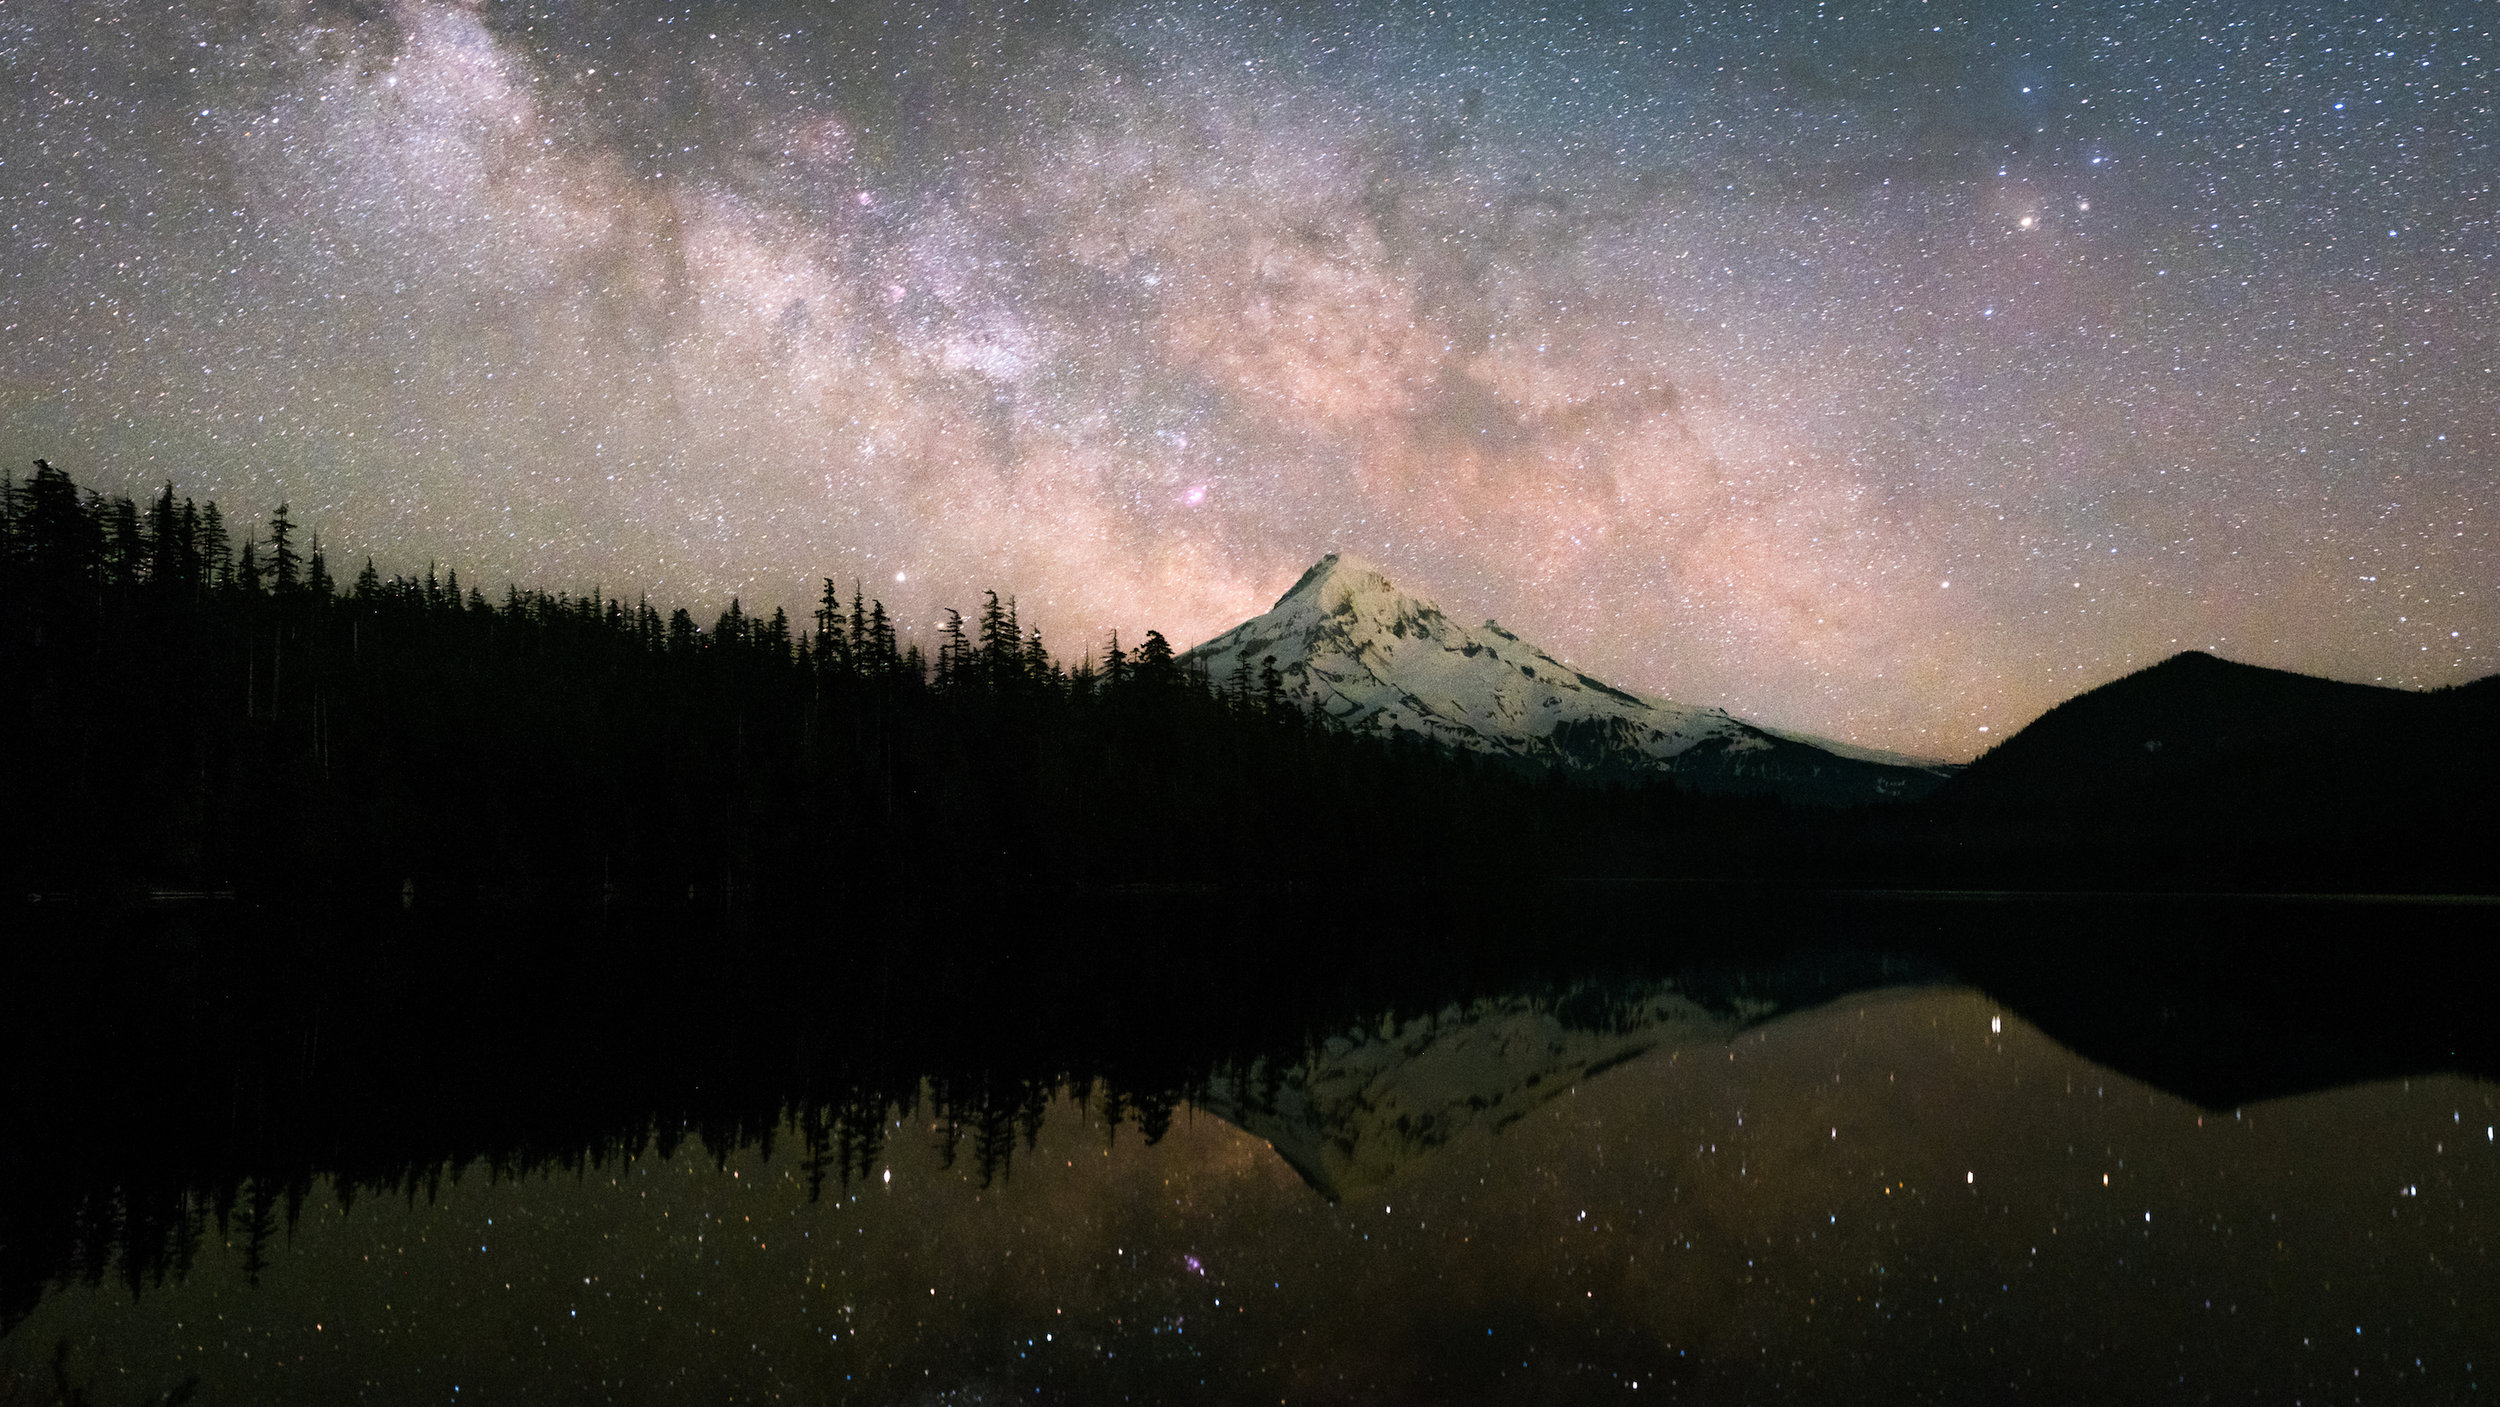 This was the first shot and panorama of the night. The Milky Way was visible to the eye, but it just looked like dark clouds on the horizon.